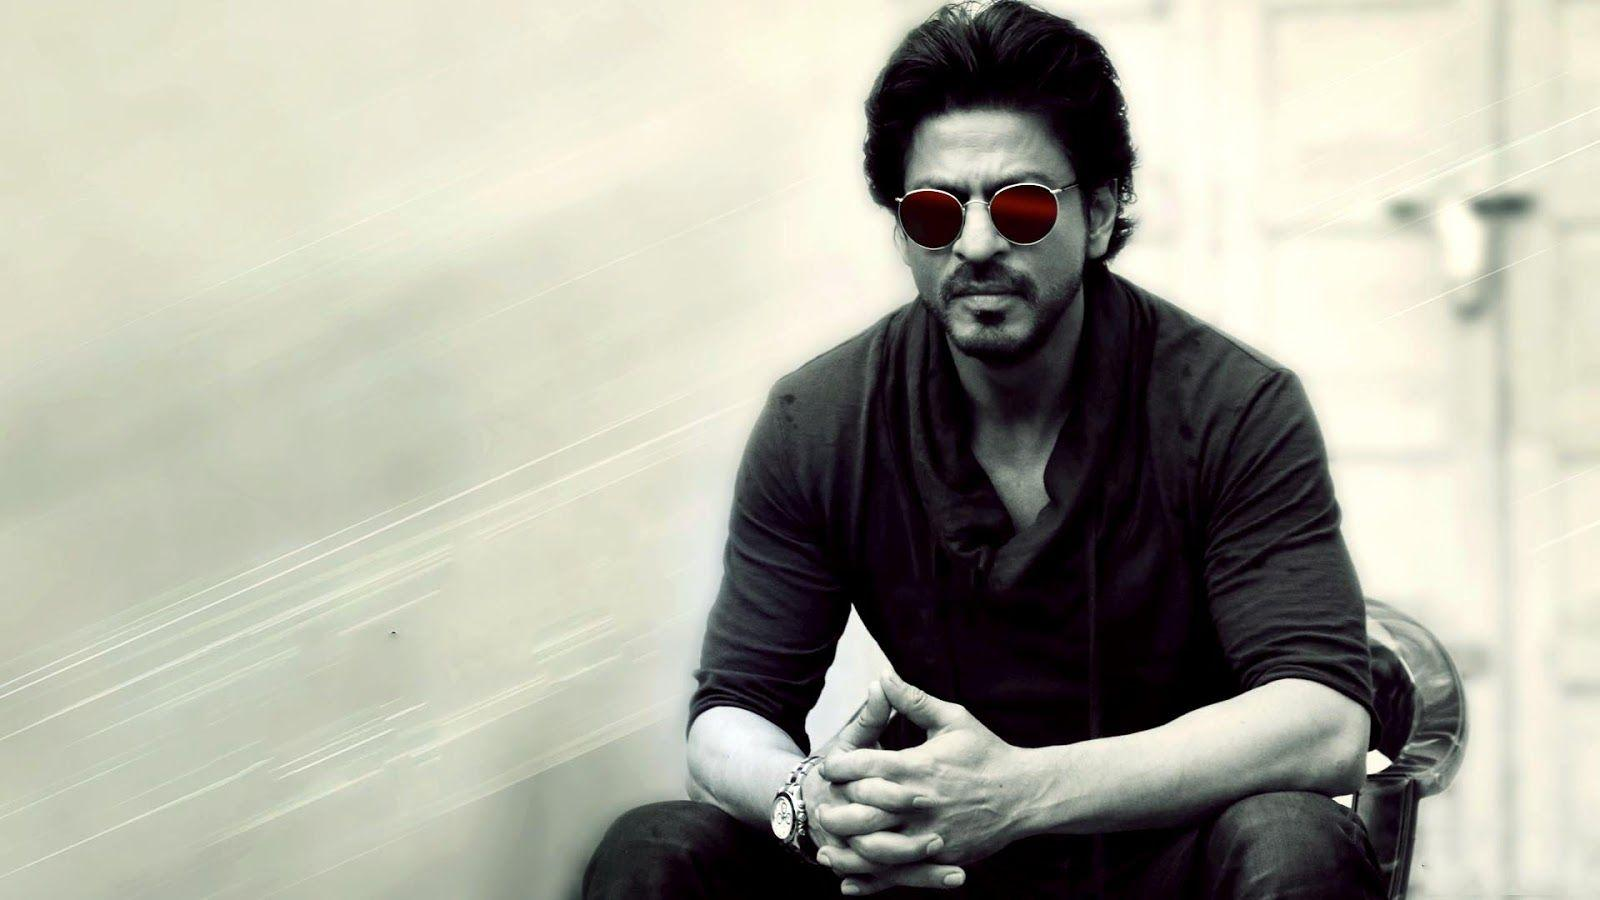 Which is not Shah rukh Khan's movie?